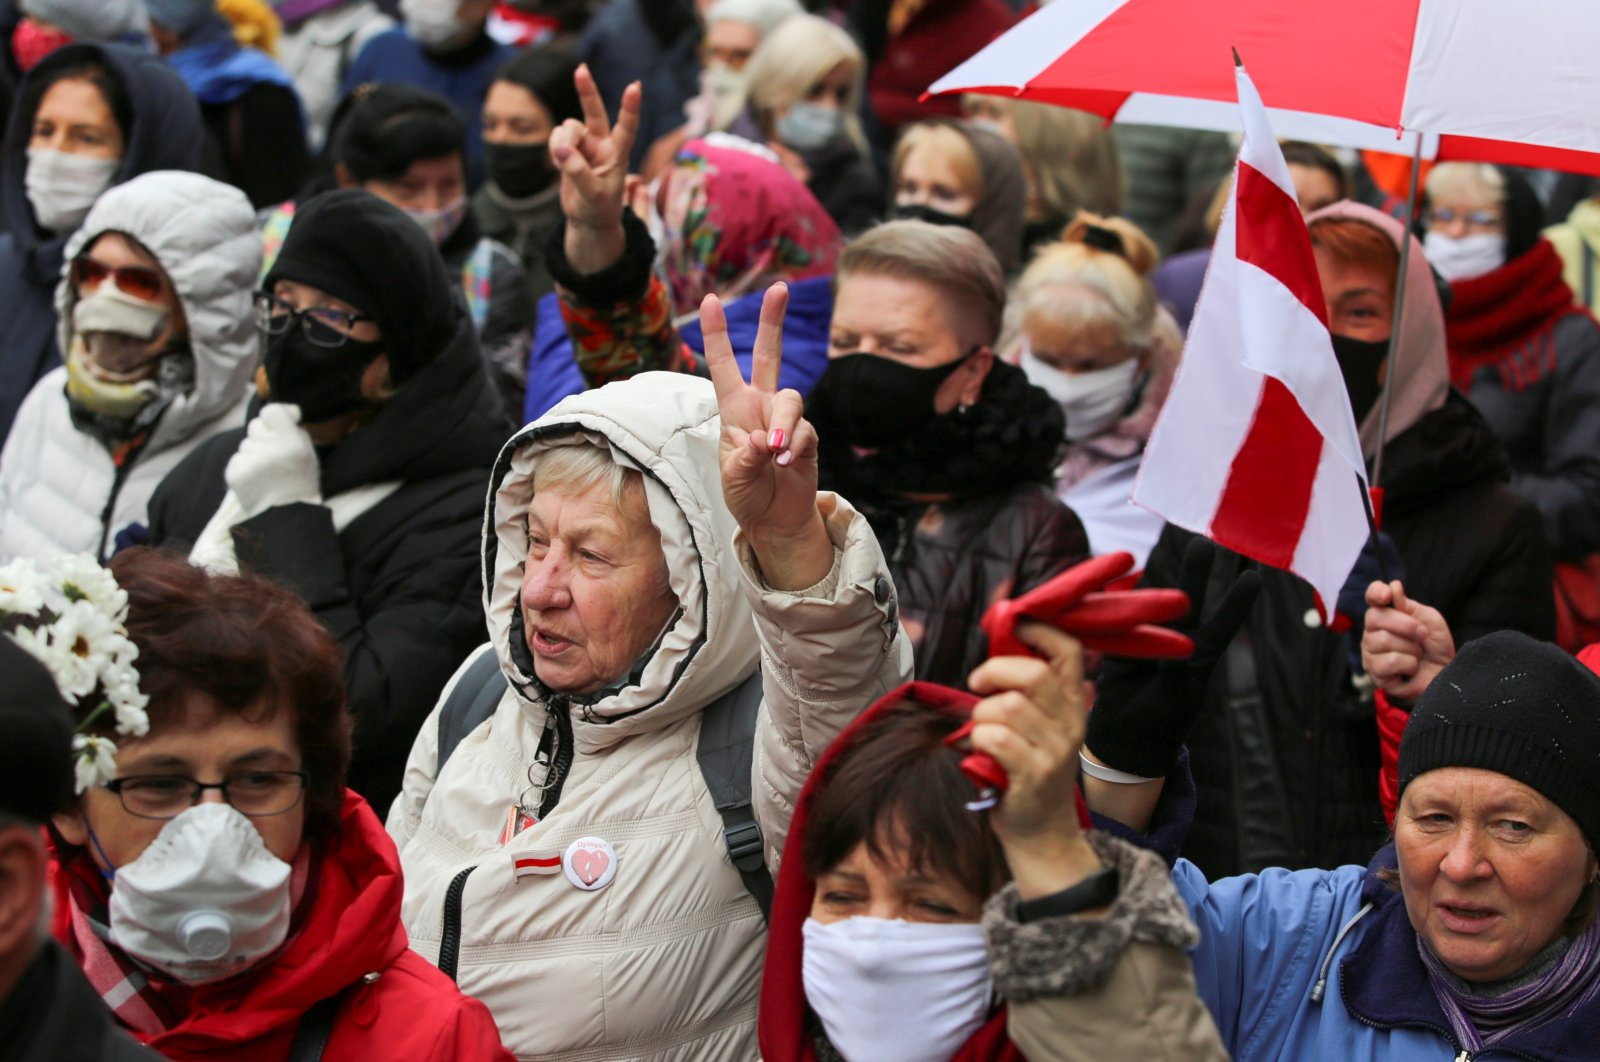 Belarusian opposition supporters attend a rally to protest against the results of a  presidential election and urge President Alexander Lukashenko to step down in Minsk, Belarus, Nov. 2, 2020. (Reuters Photo)